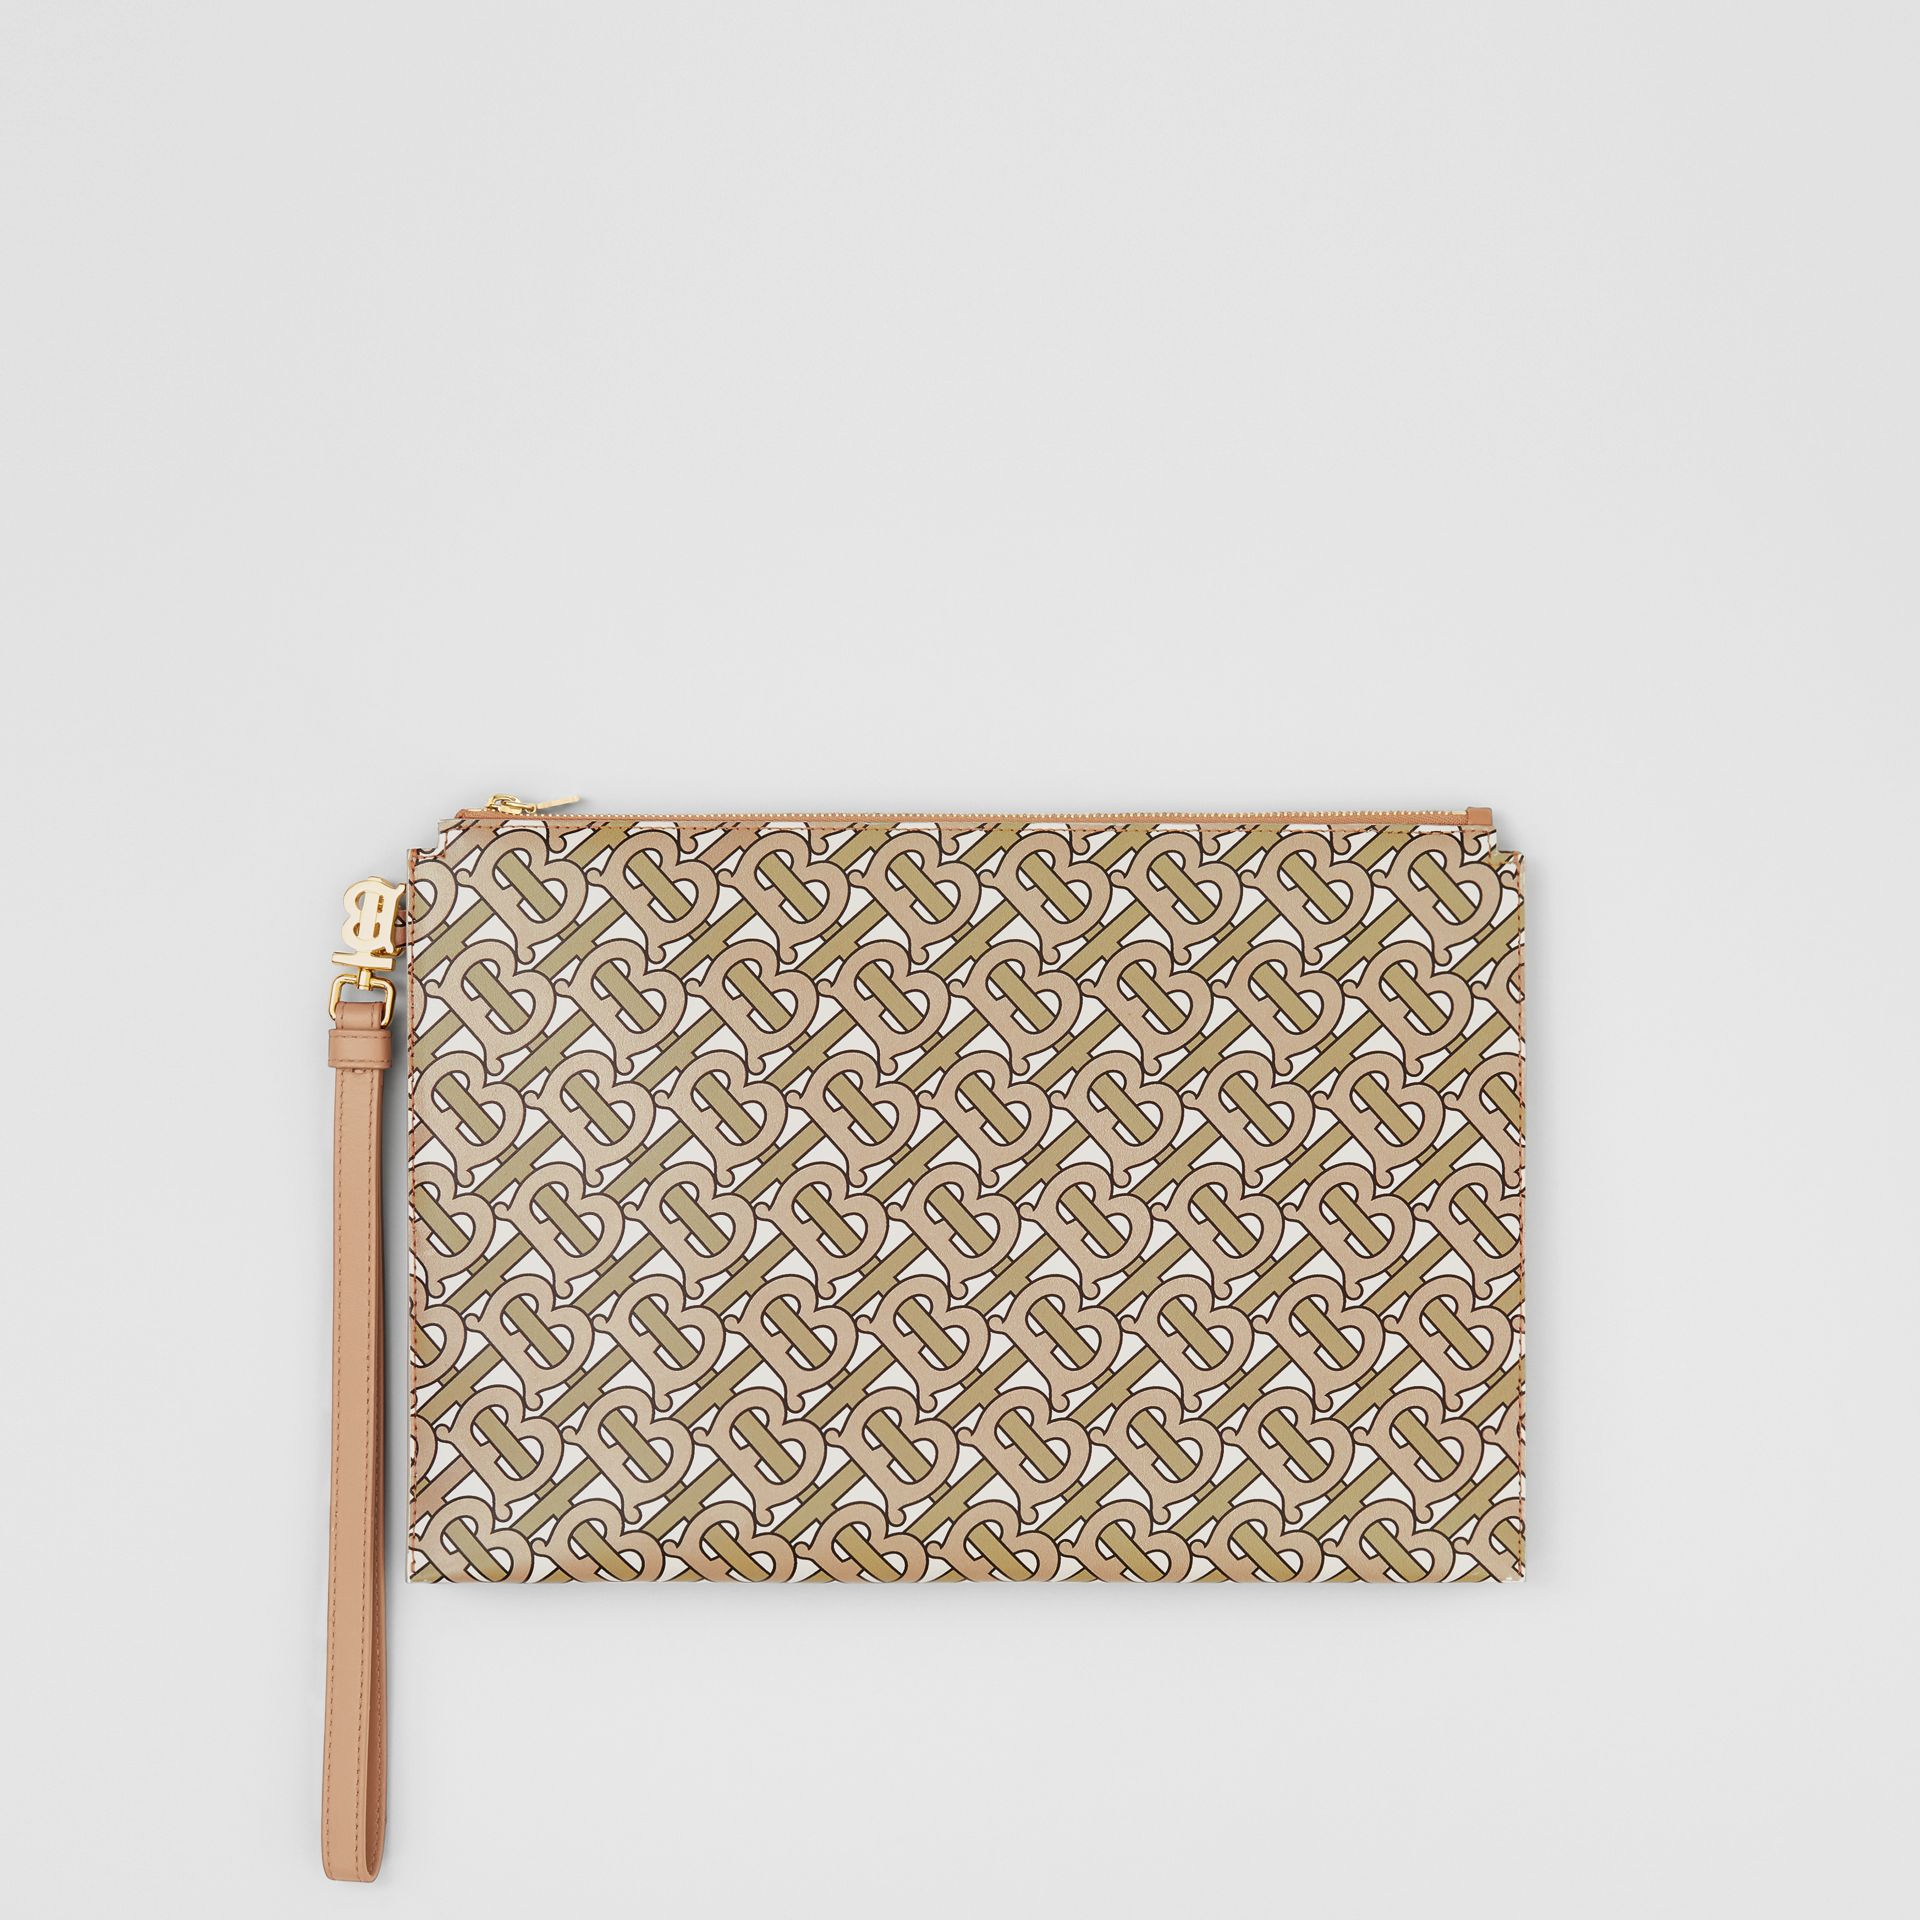 Monogram Print Leather Pouch in Beige - Women | Burberry - gallery image 7